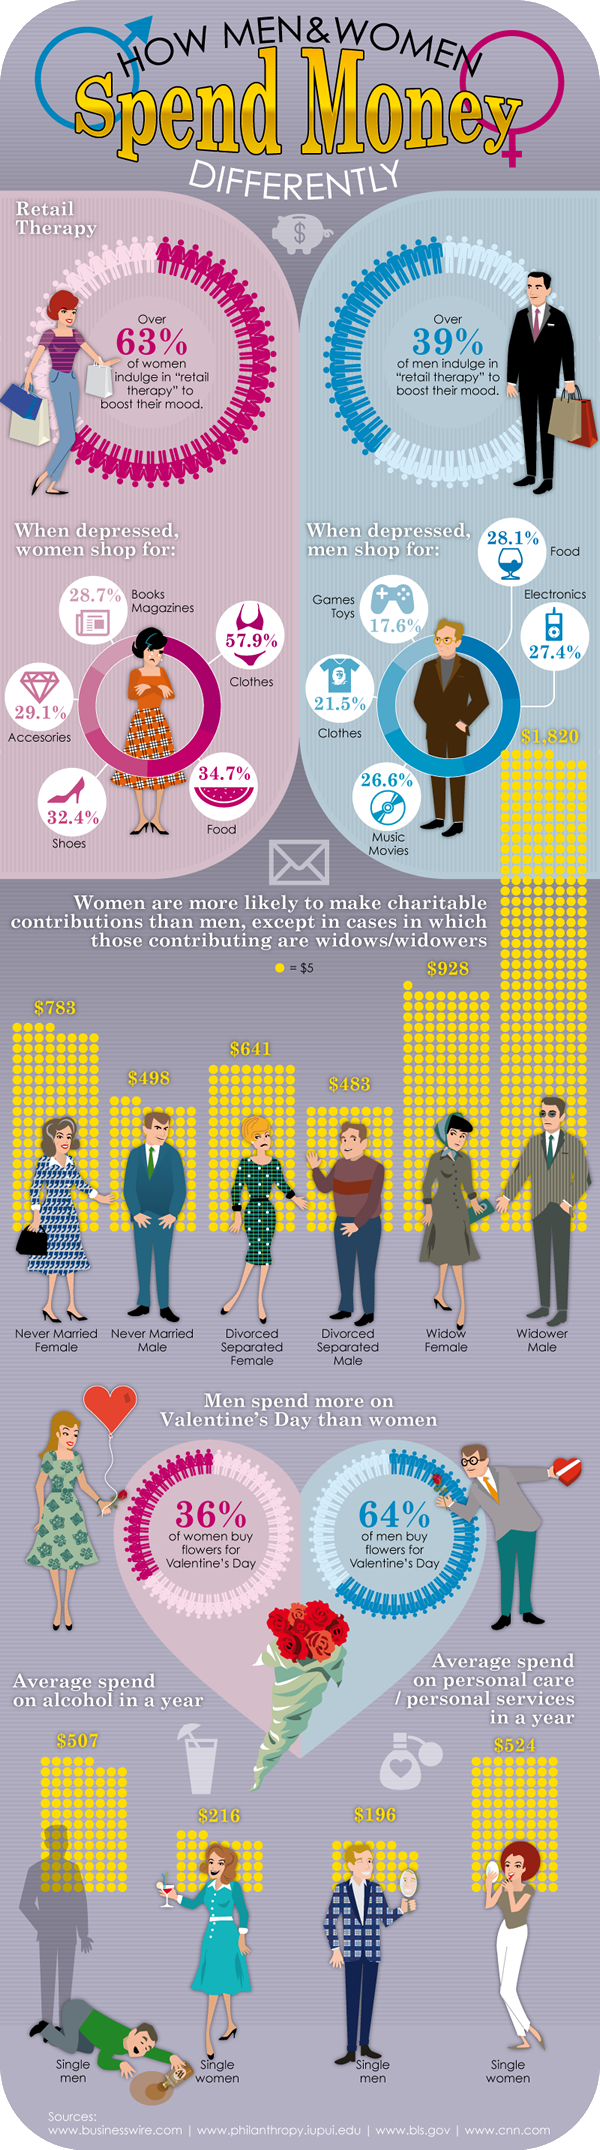 How men and women spend money differently?